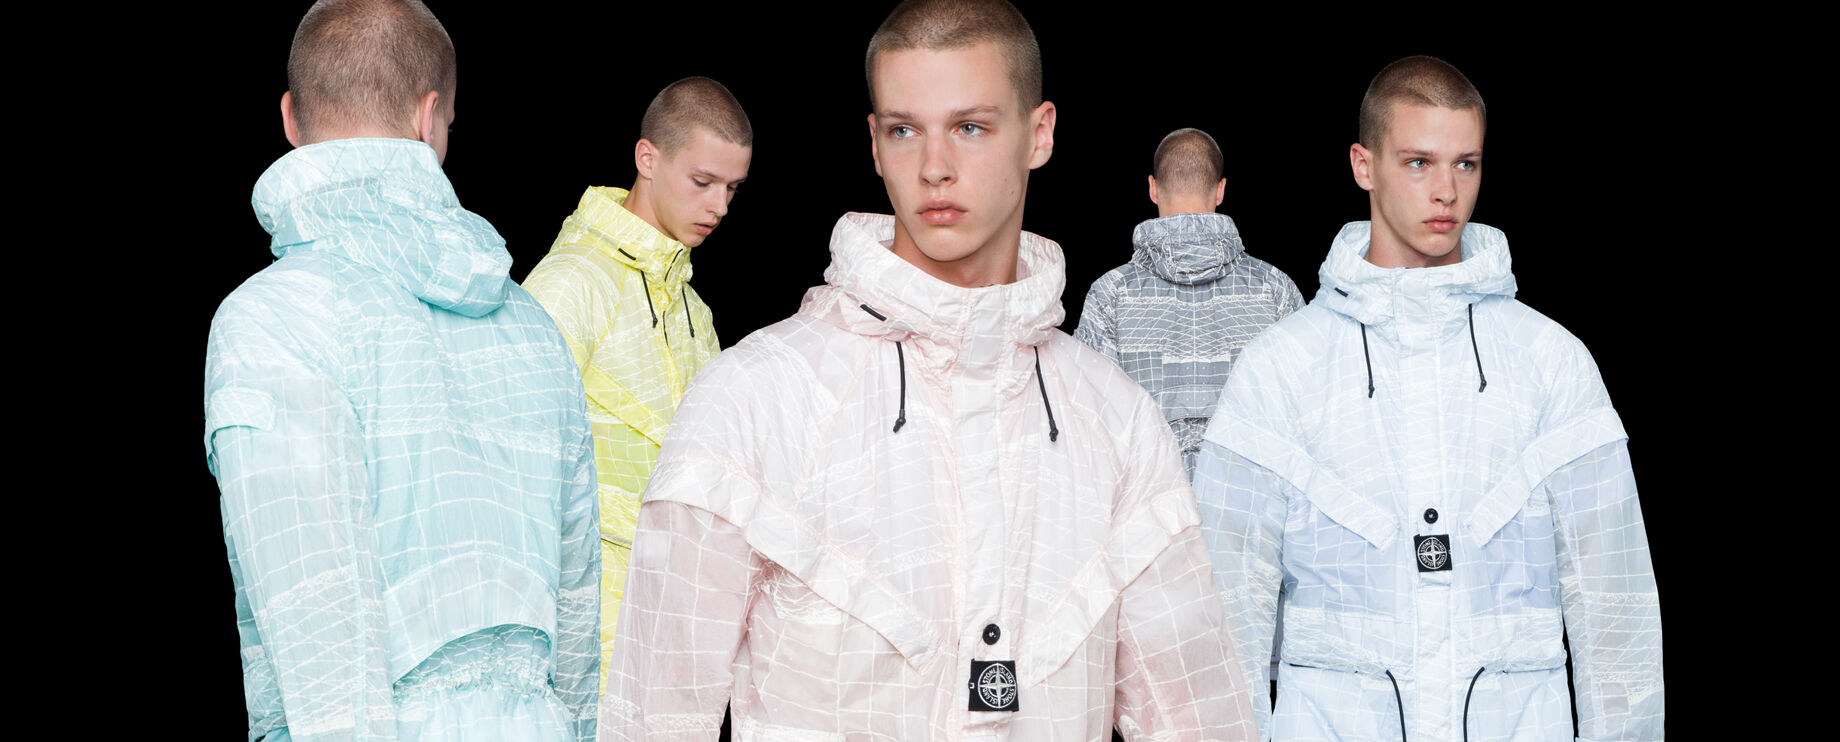 Five shots of the same model showing the front, side and back of a hooded jacket in different colors, aqua blue, yellow, light pink, gray and light blue, all with a white print.